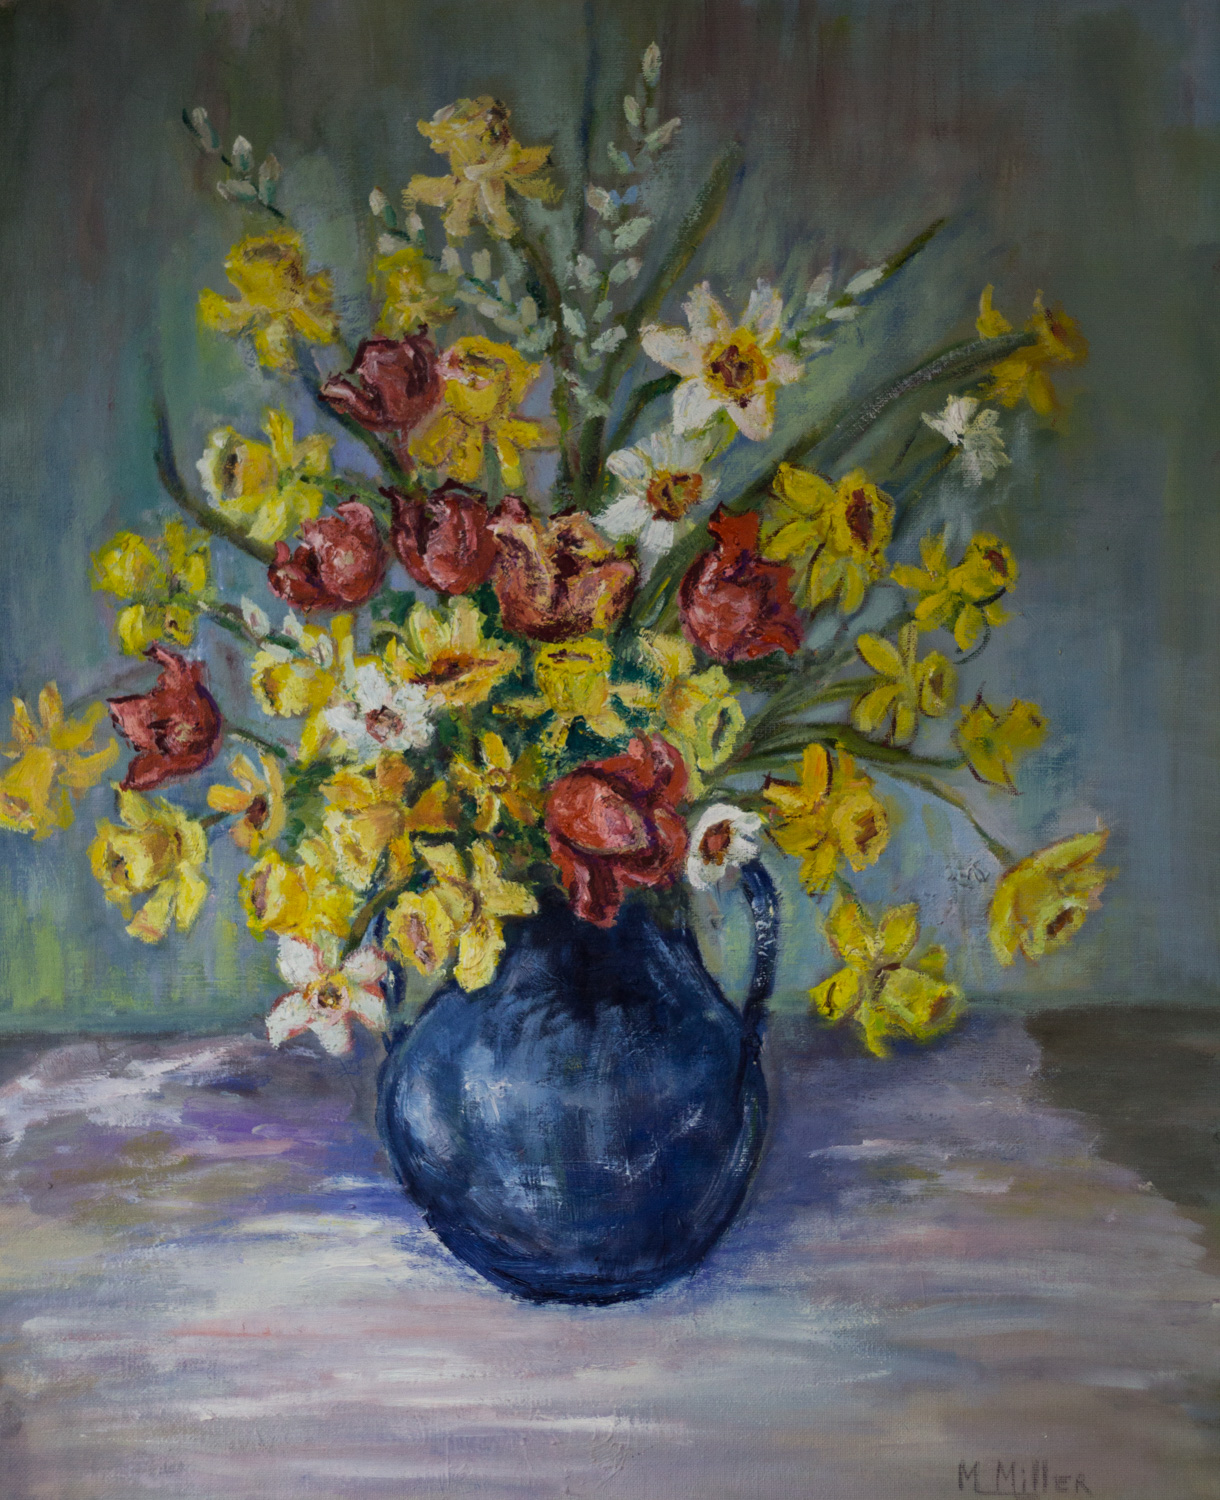 Floral Still Life, by Marianne Miller, Oil on Canvas, Donation